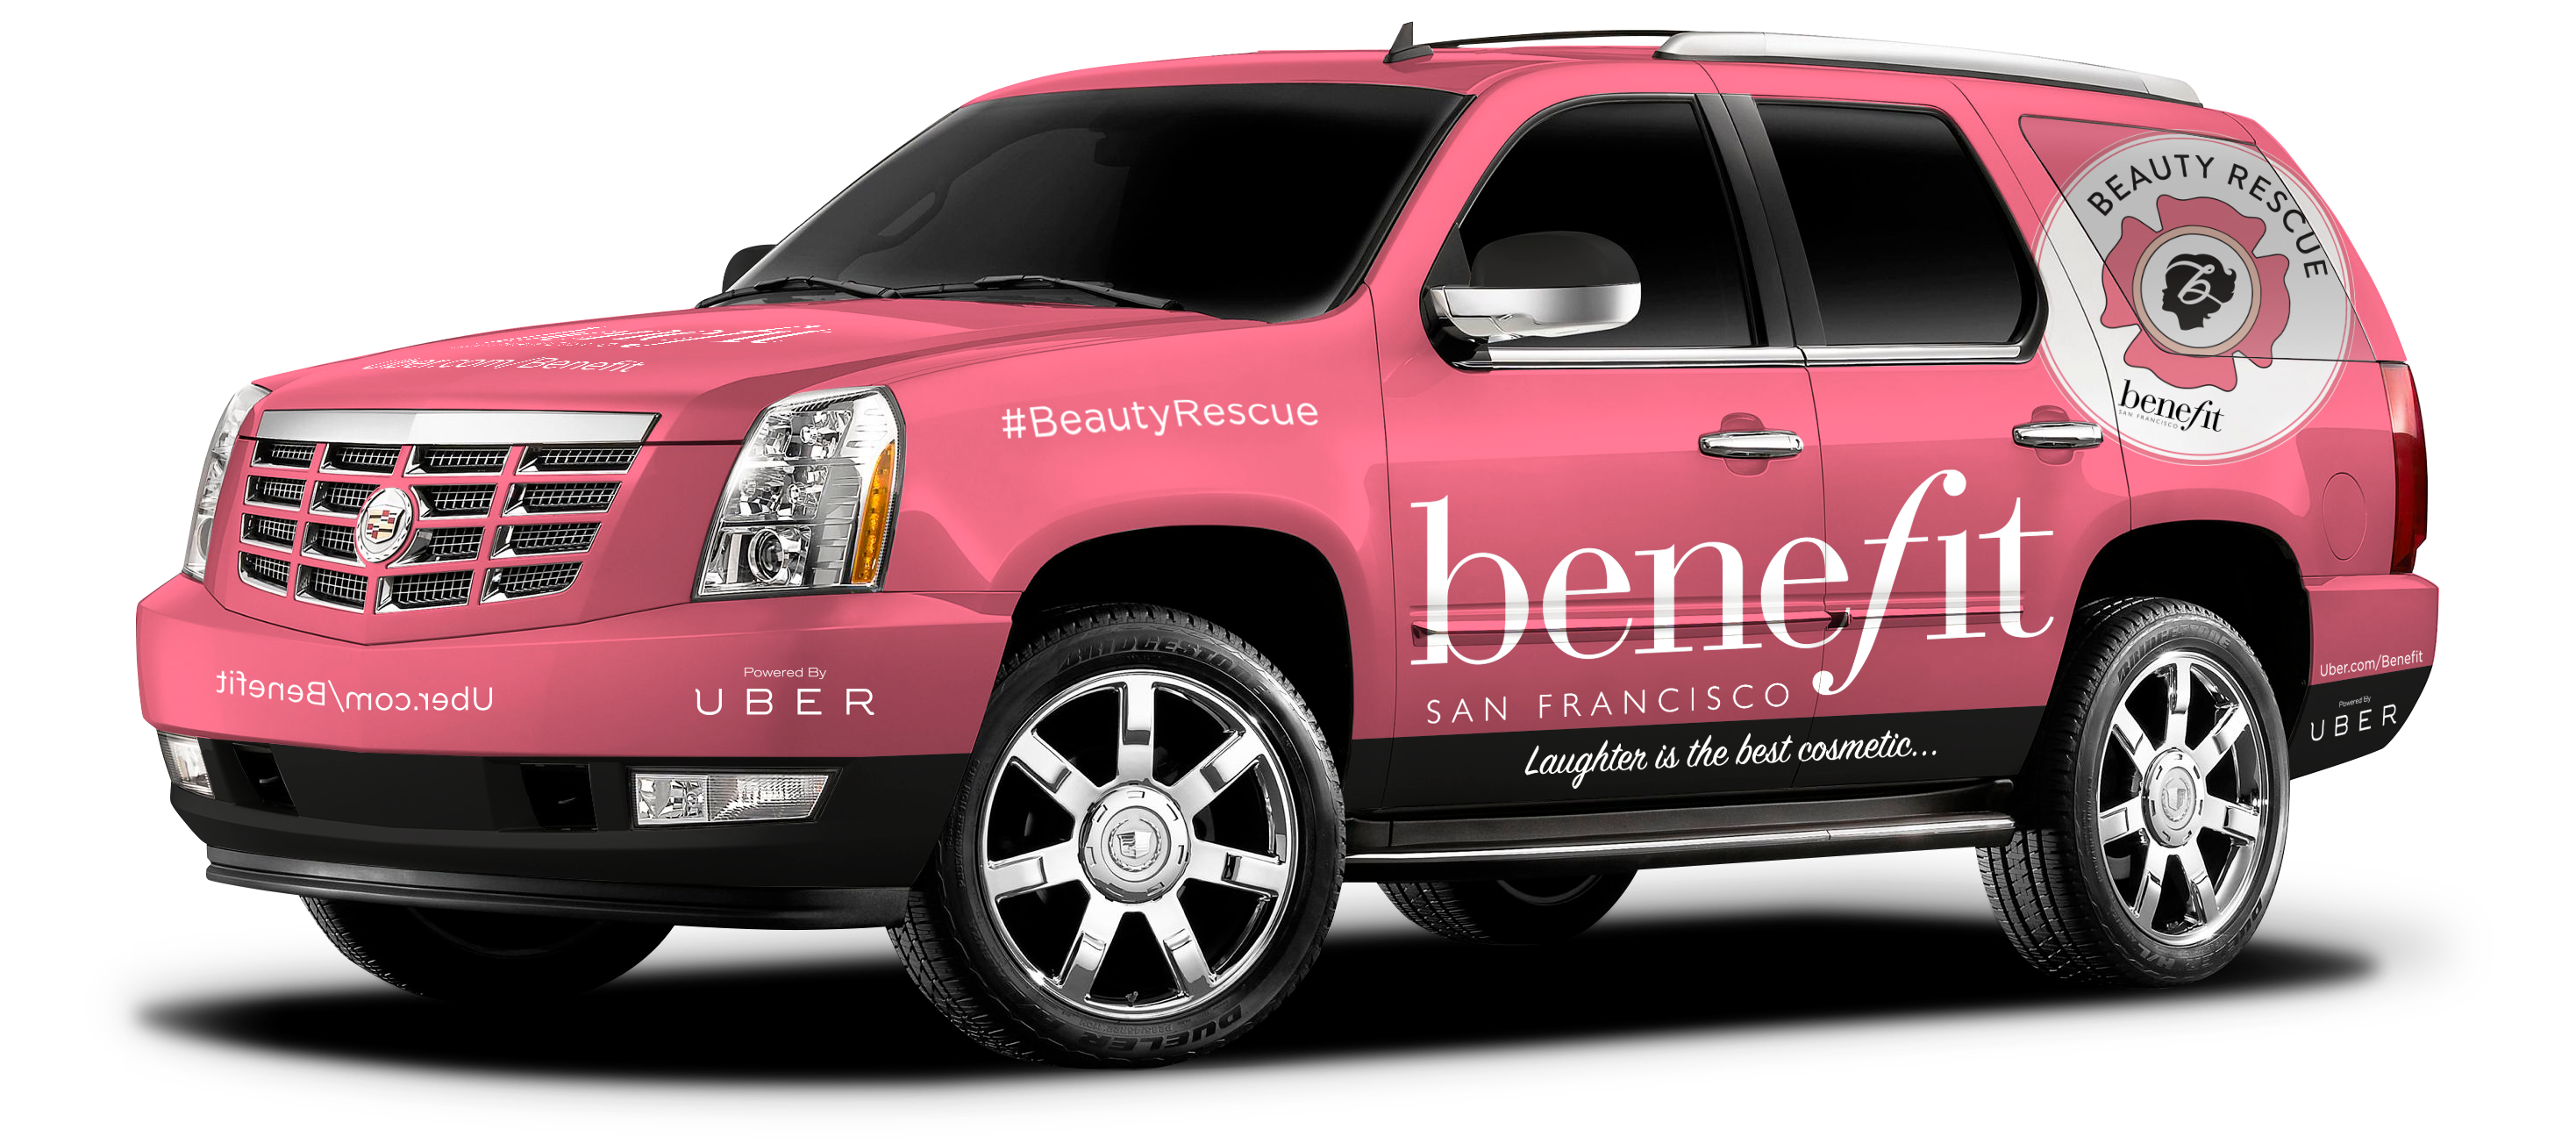 Benefit Cosmetics and UBER wrapped a fleet of Escalades for NYC Fashion Week